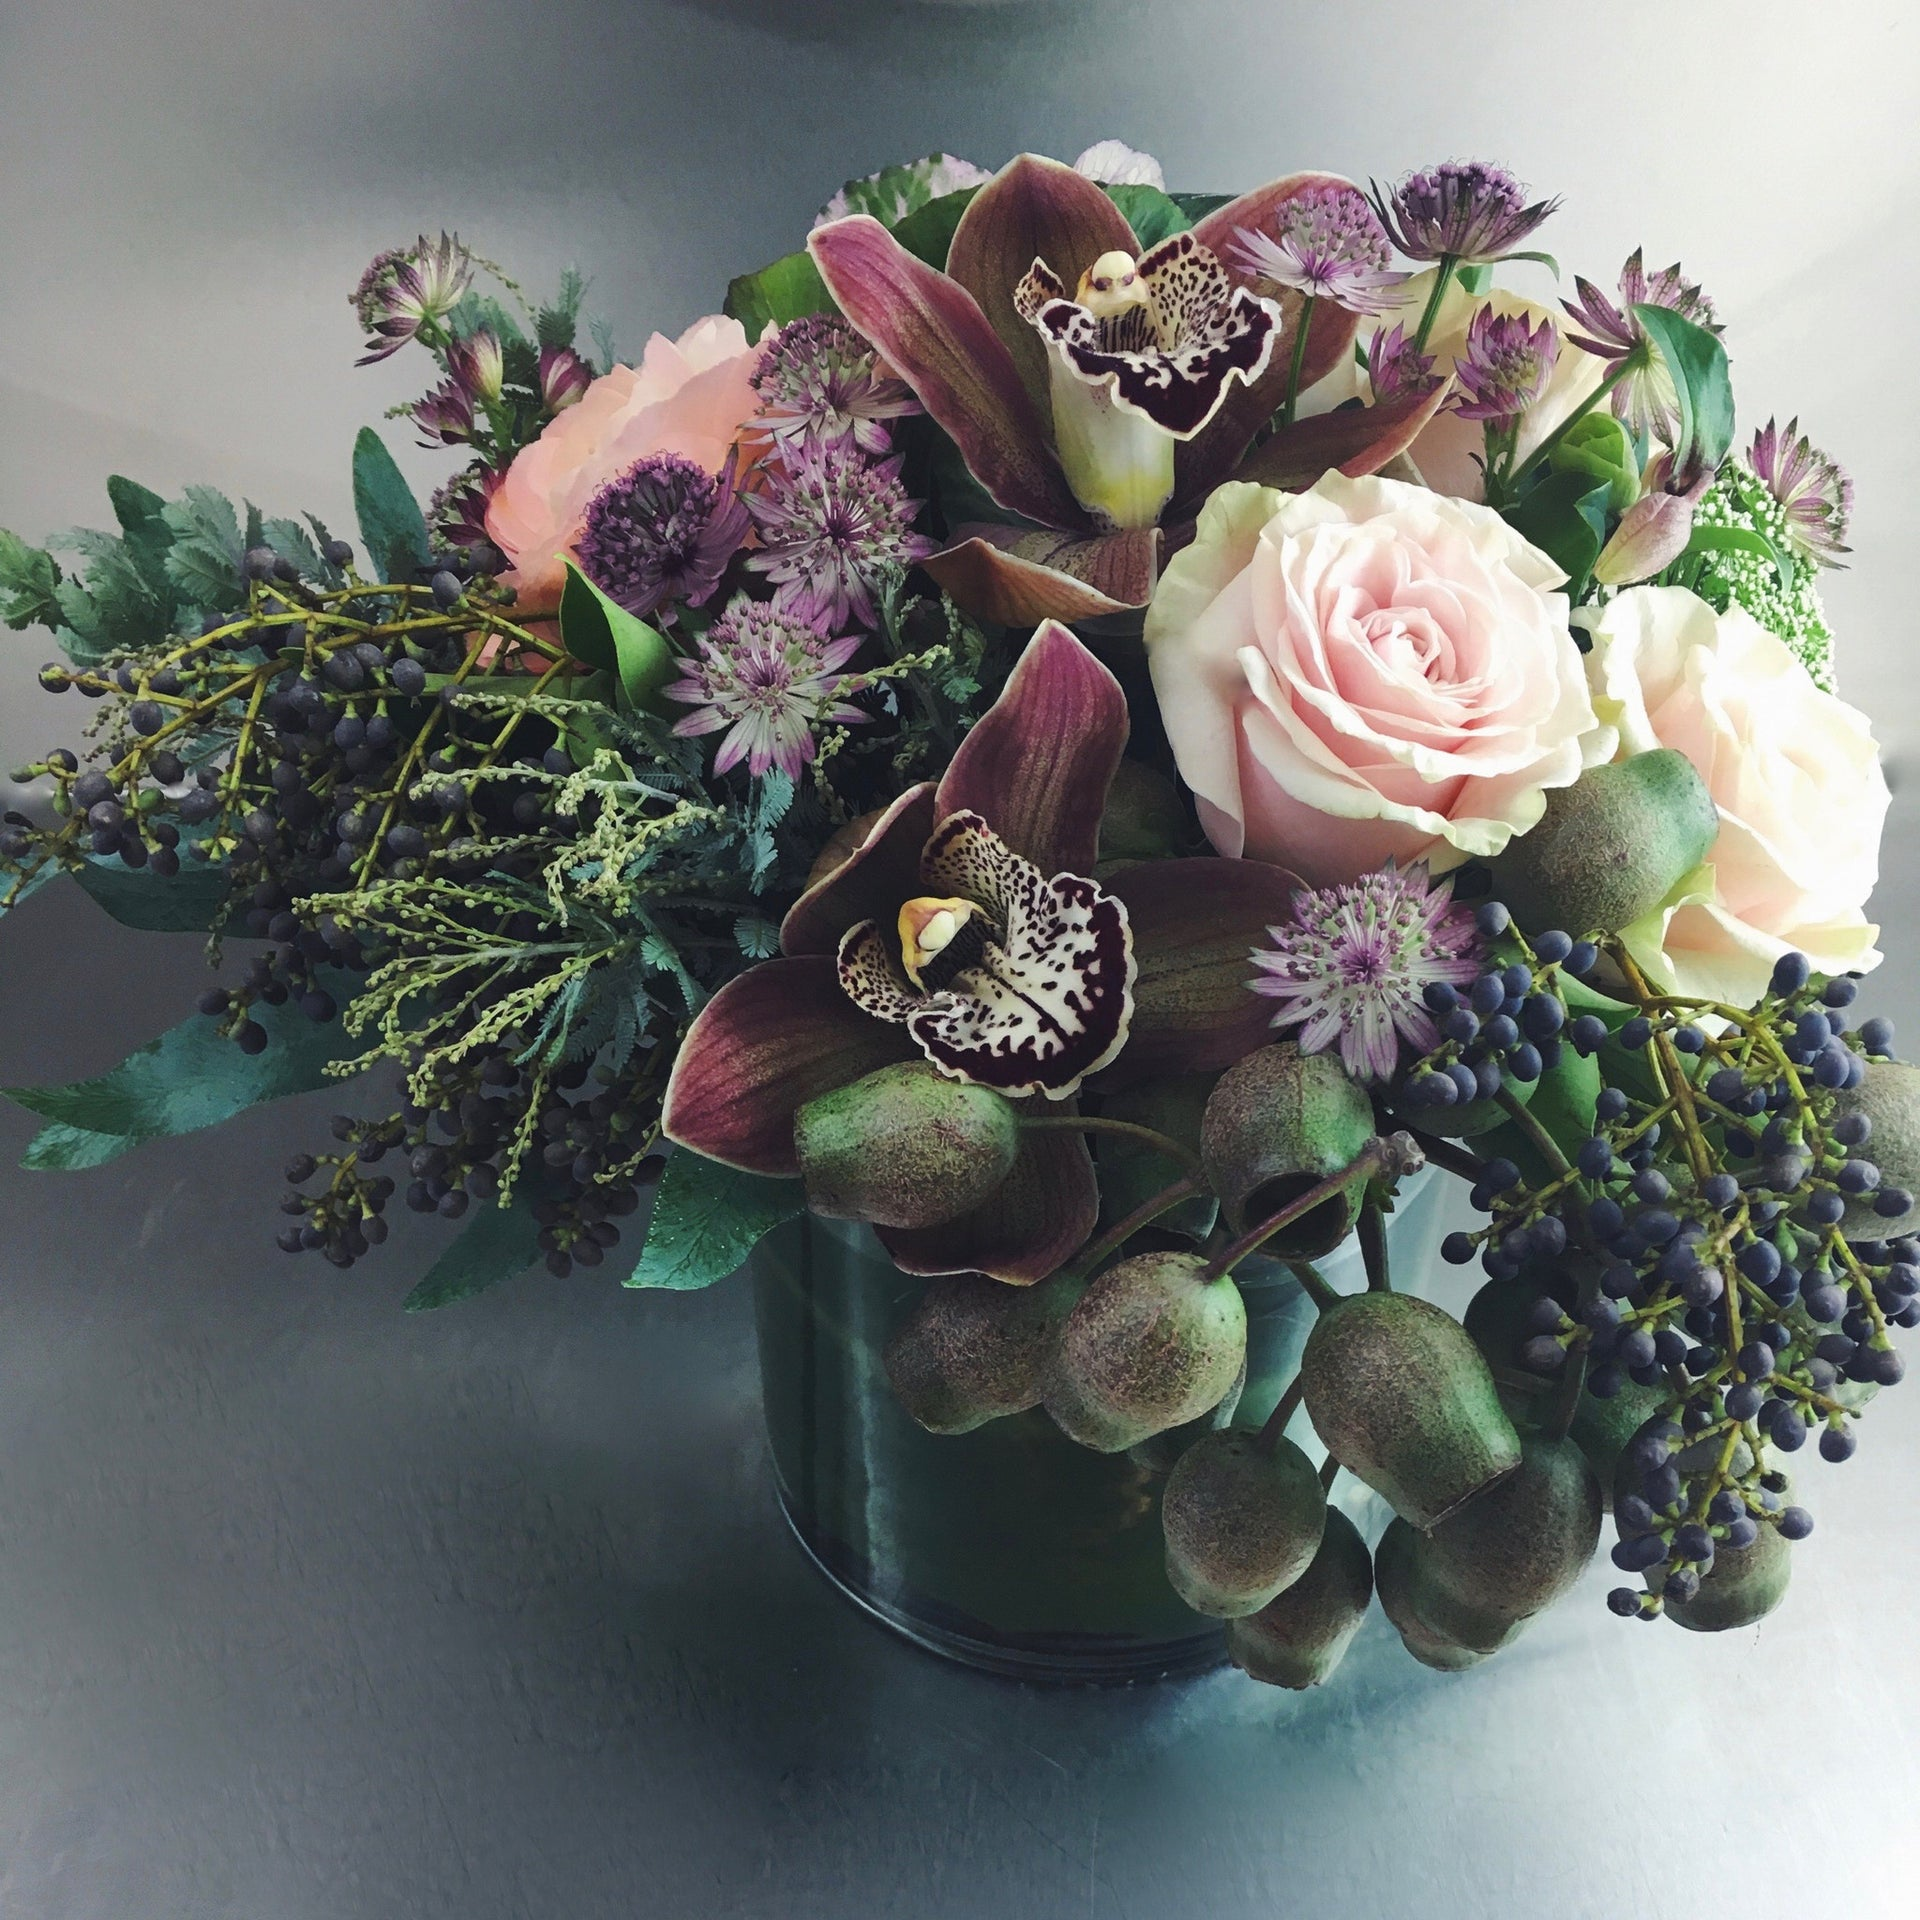 Designer's choice low arrangement using orchids, roses, and privet berries.